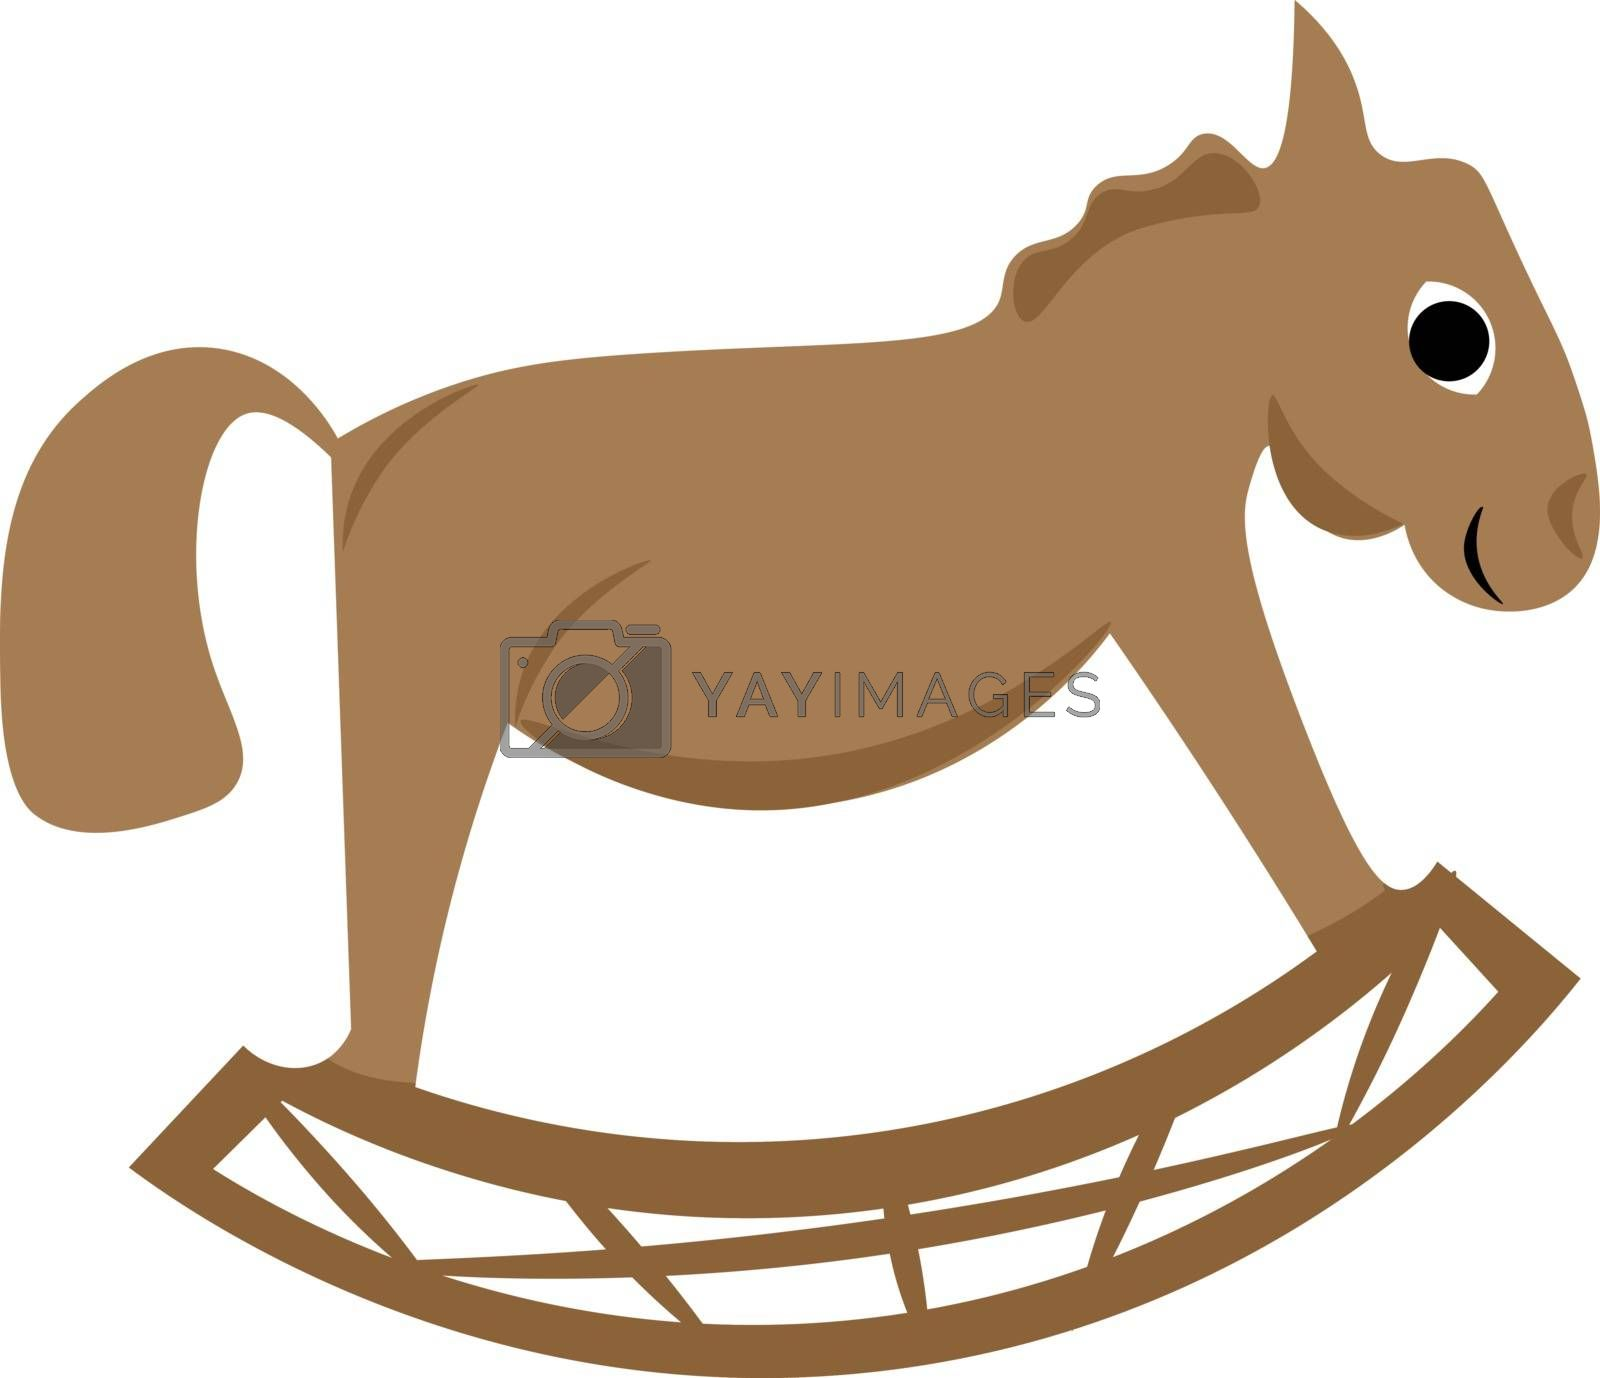 Royalty free image of Clipart of a brown-colored toy rocking horse vector or color ill by Morphart